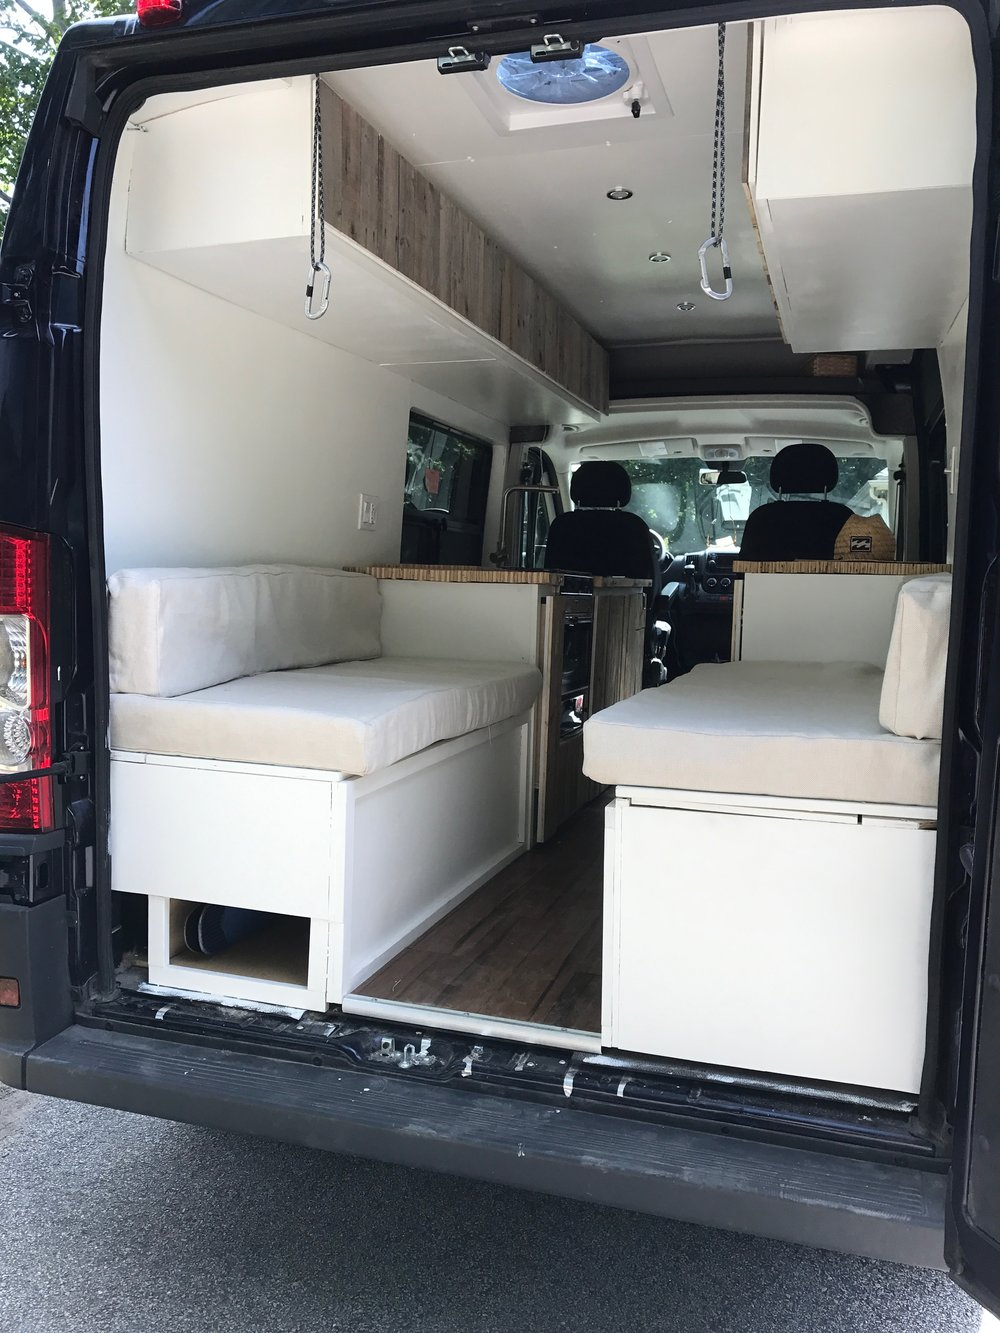 Cushions covered and installed in the van! The couches and bed were complete!